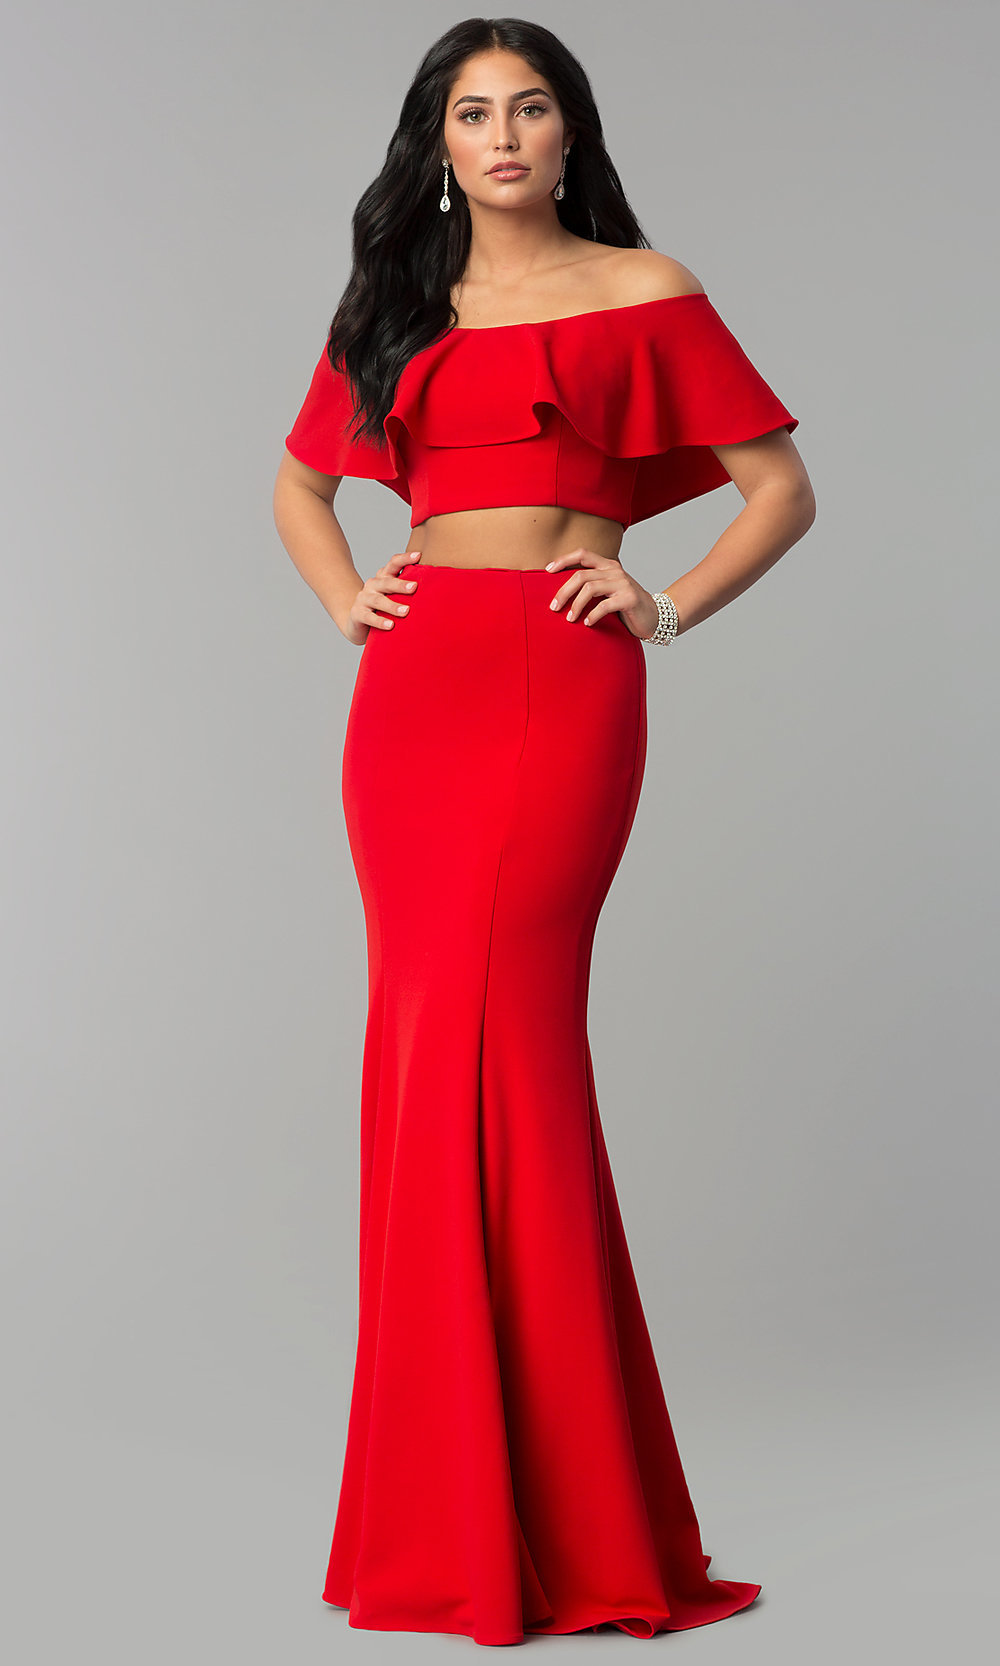 b7747ba03d9c Image of long two-piece off-shoulder flounce-top prom dress. Style. Tap to  expand